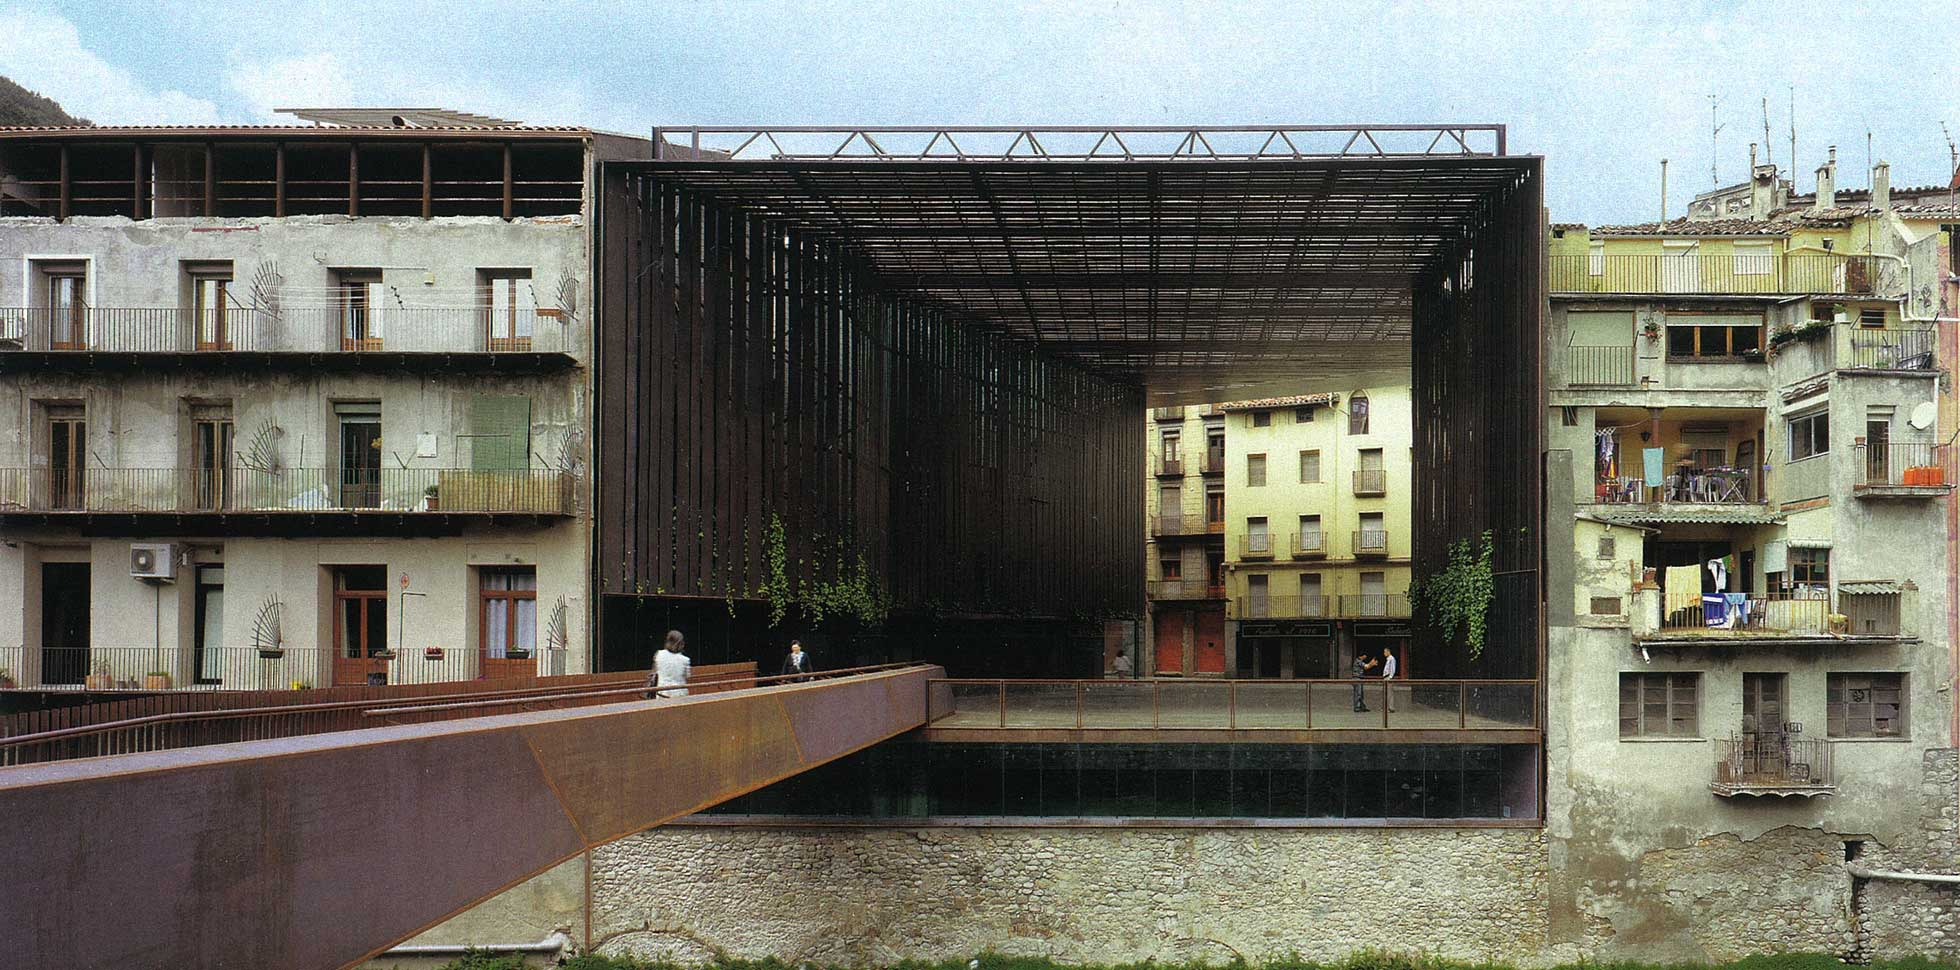 Structure architecture news - Arquitectura girona ...